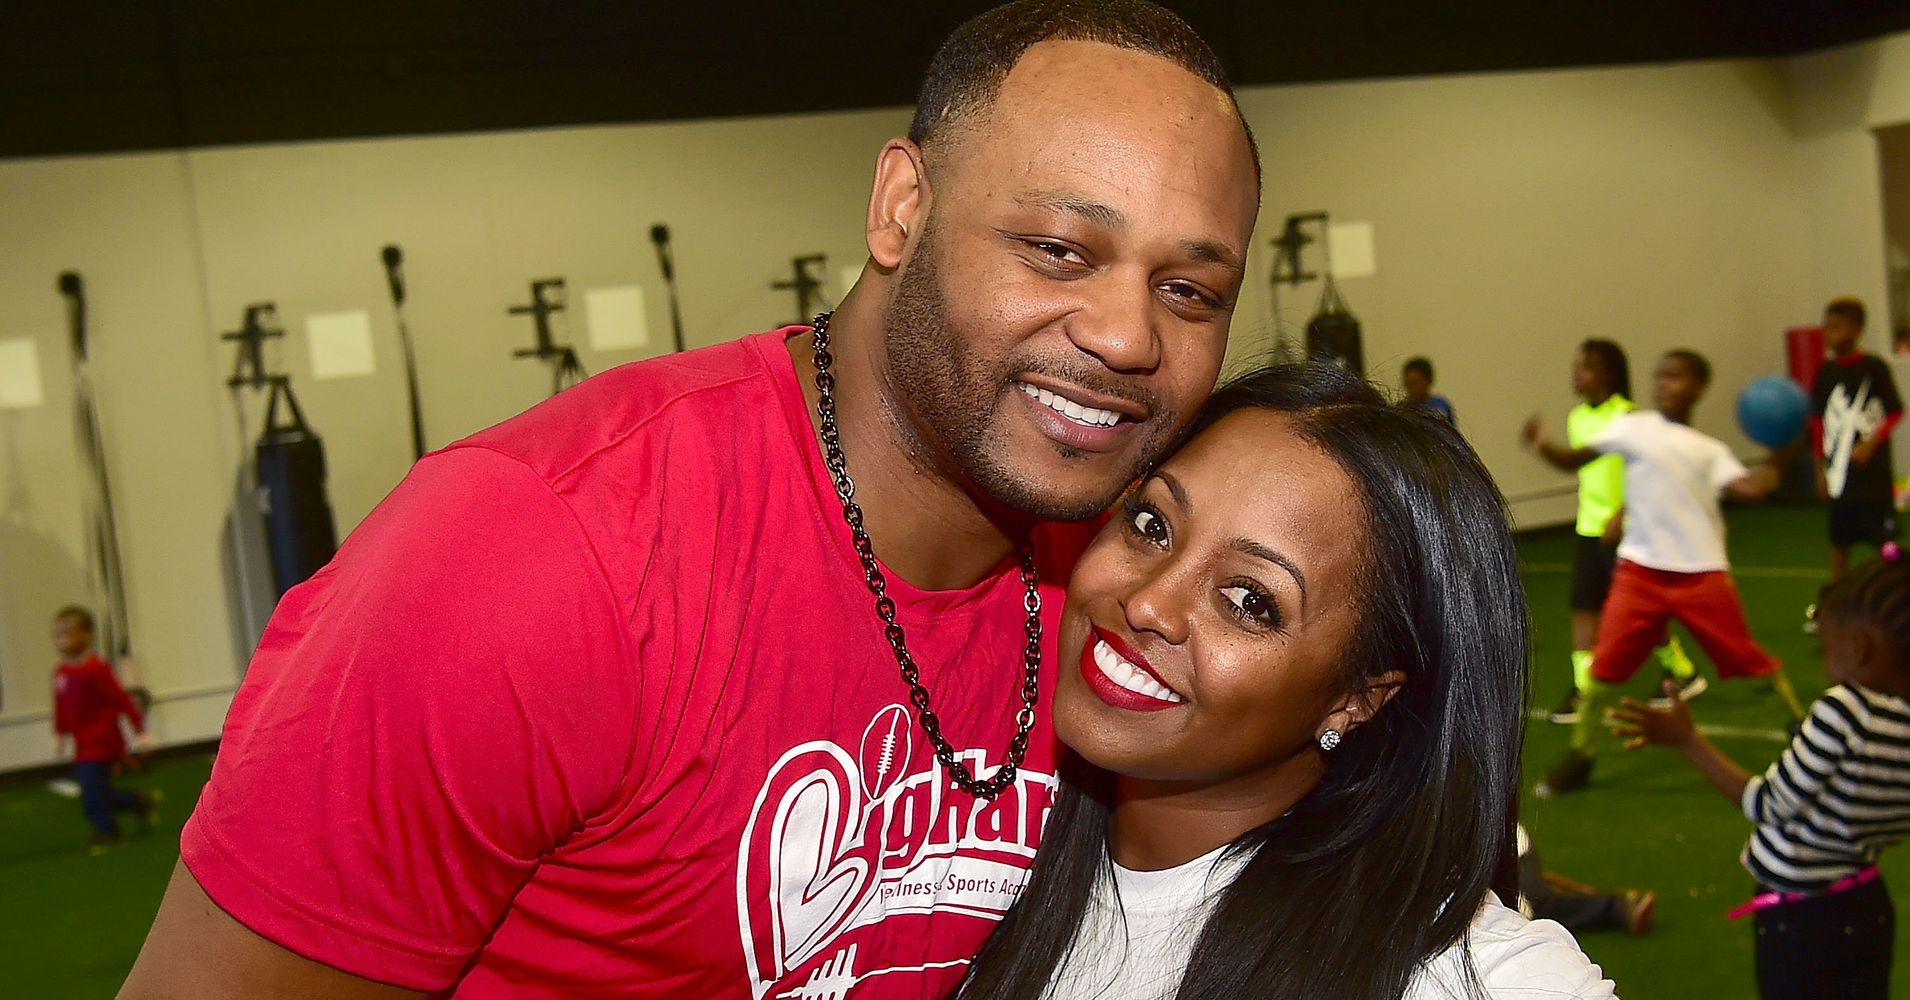 Keshia knight pulliam net worth exposed vids